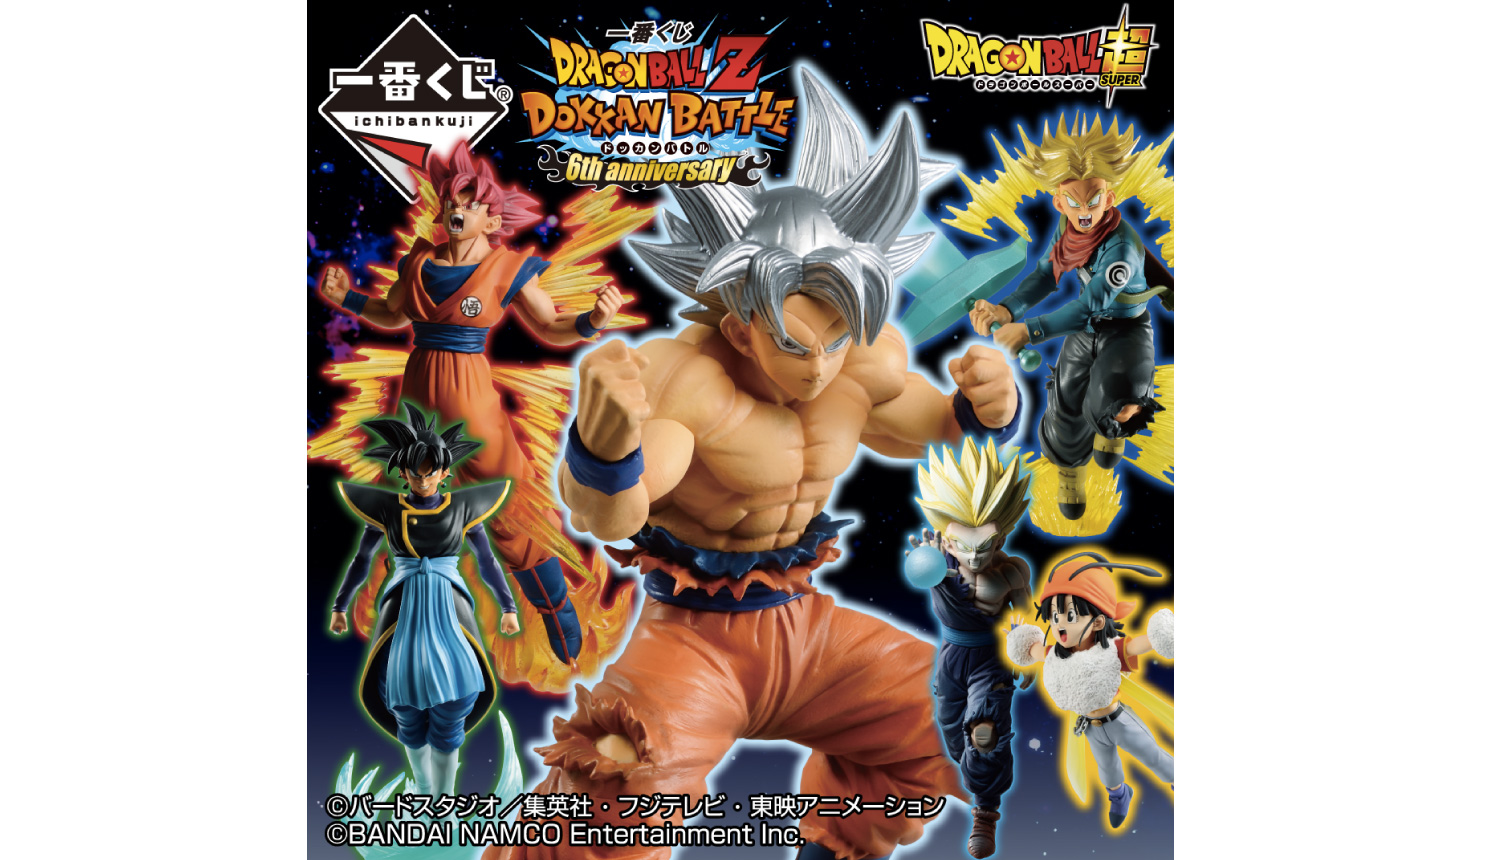 Dragon Ball Z Dokkan Battle S 6th Anniversary Celebrated With Figurine Lottery Draw Moshi Moshi Nippon もしもしにっぽん